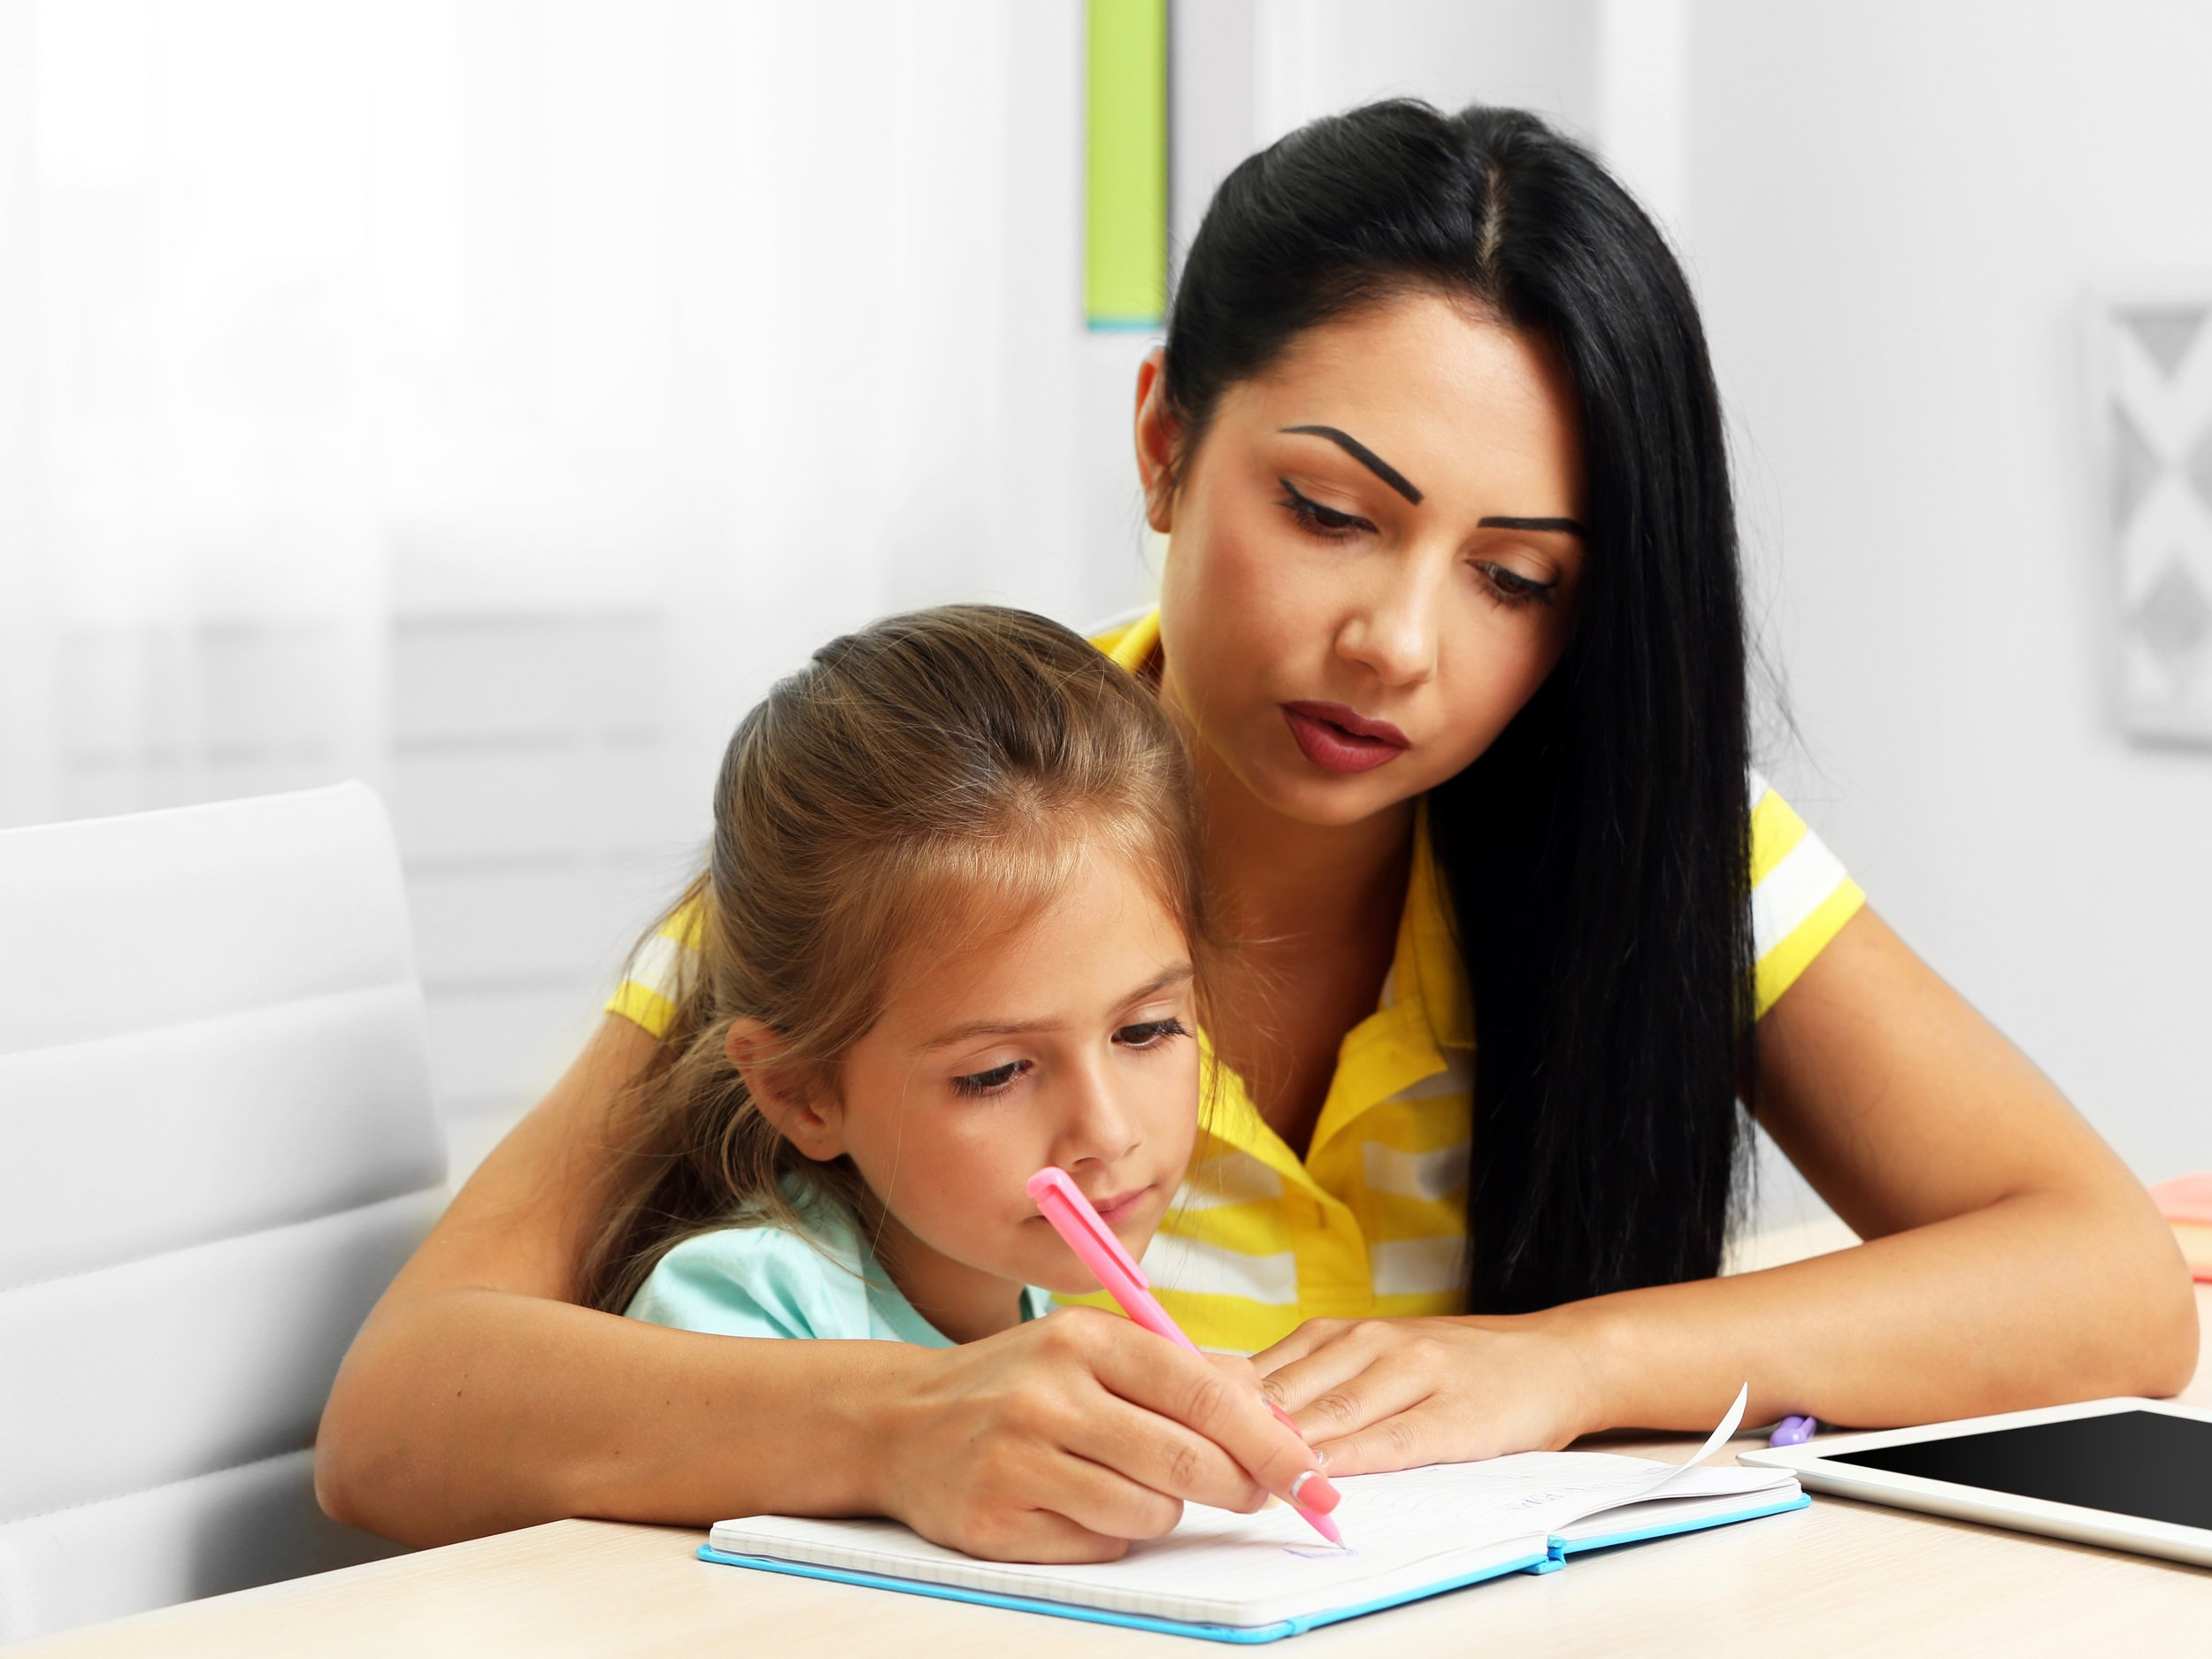 Parents are increasing instruction time spent with young children, in part to give them a leg up on other kids. (Shutterstock)